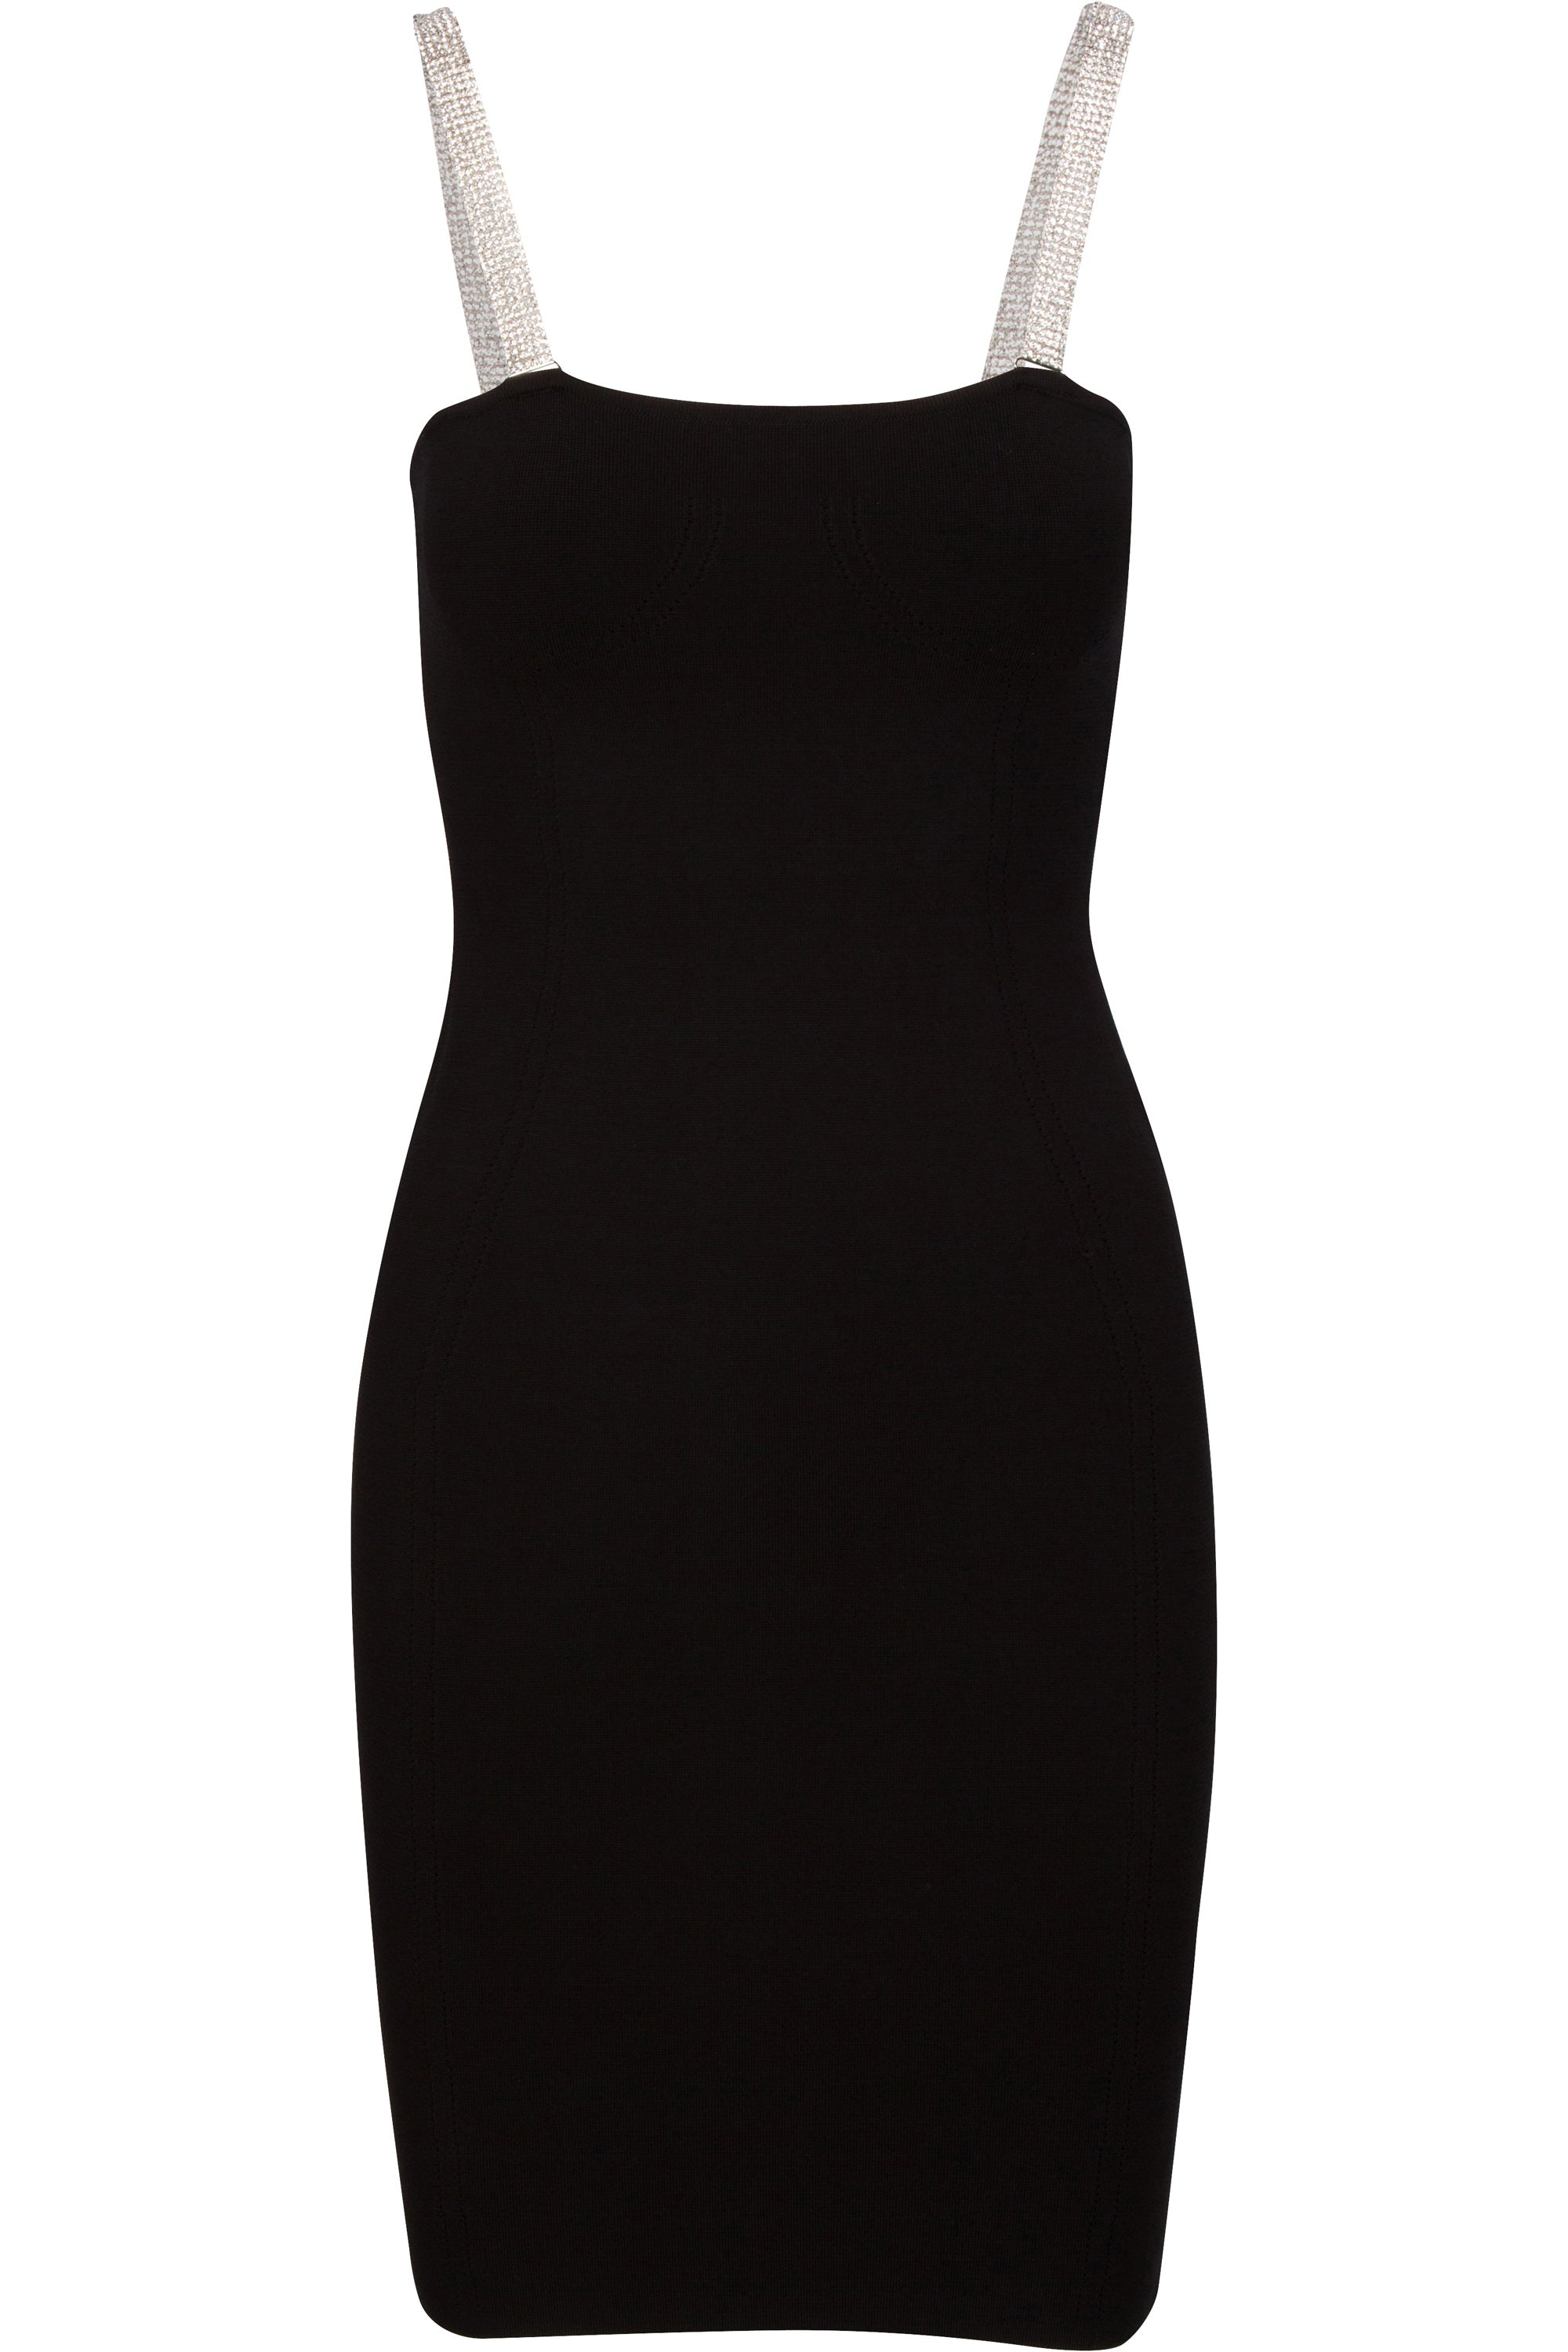 COMPACT KNIT LBD DRESSES by KENDALL + KYLIE